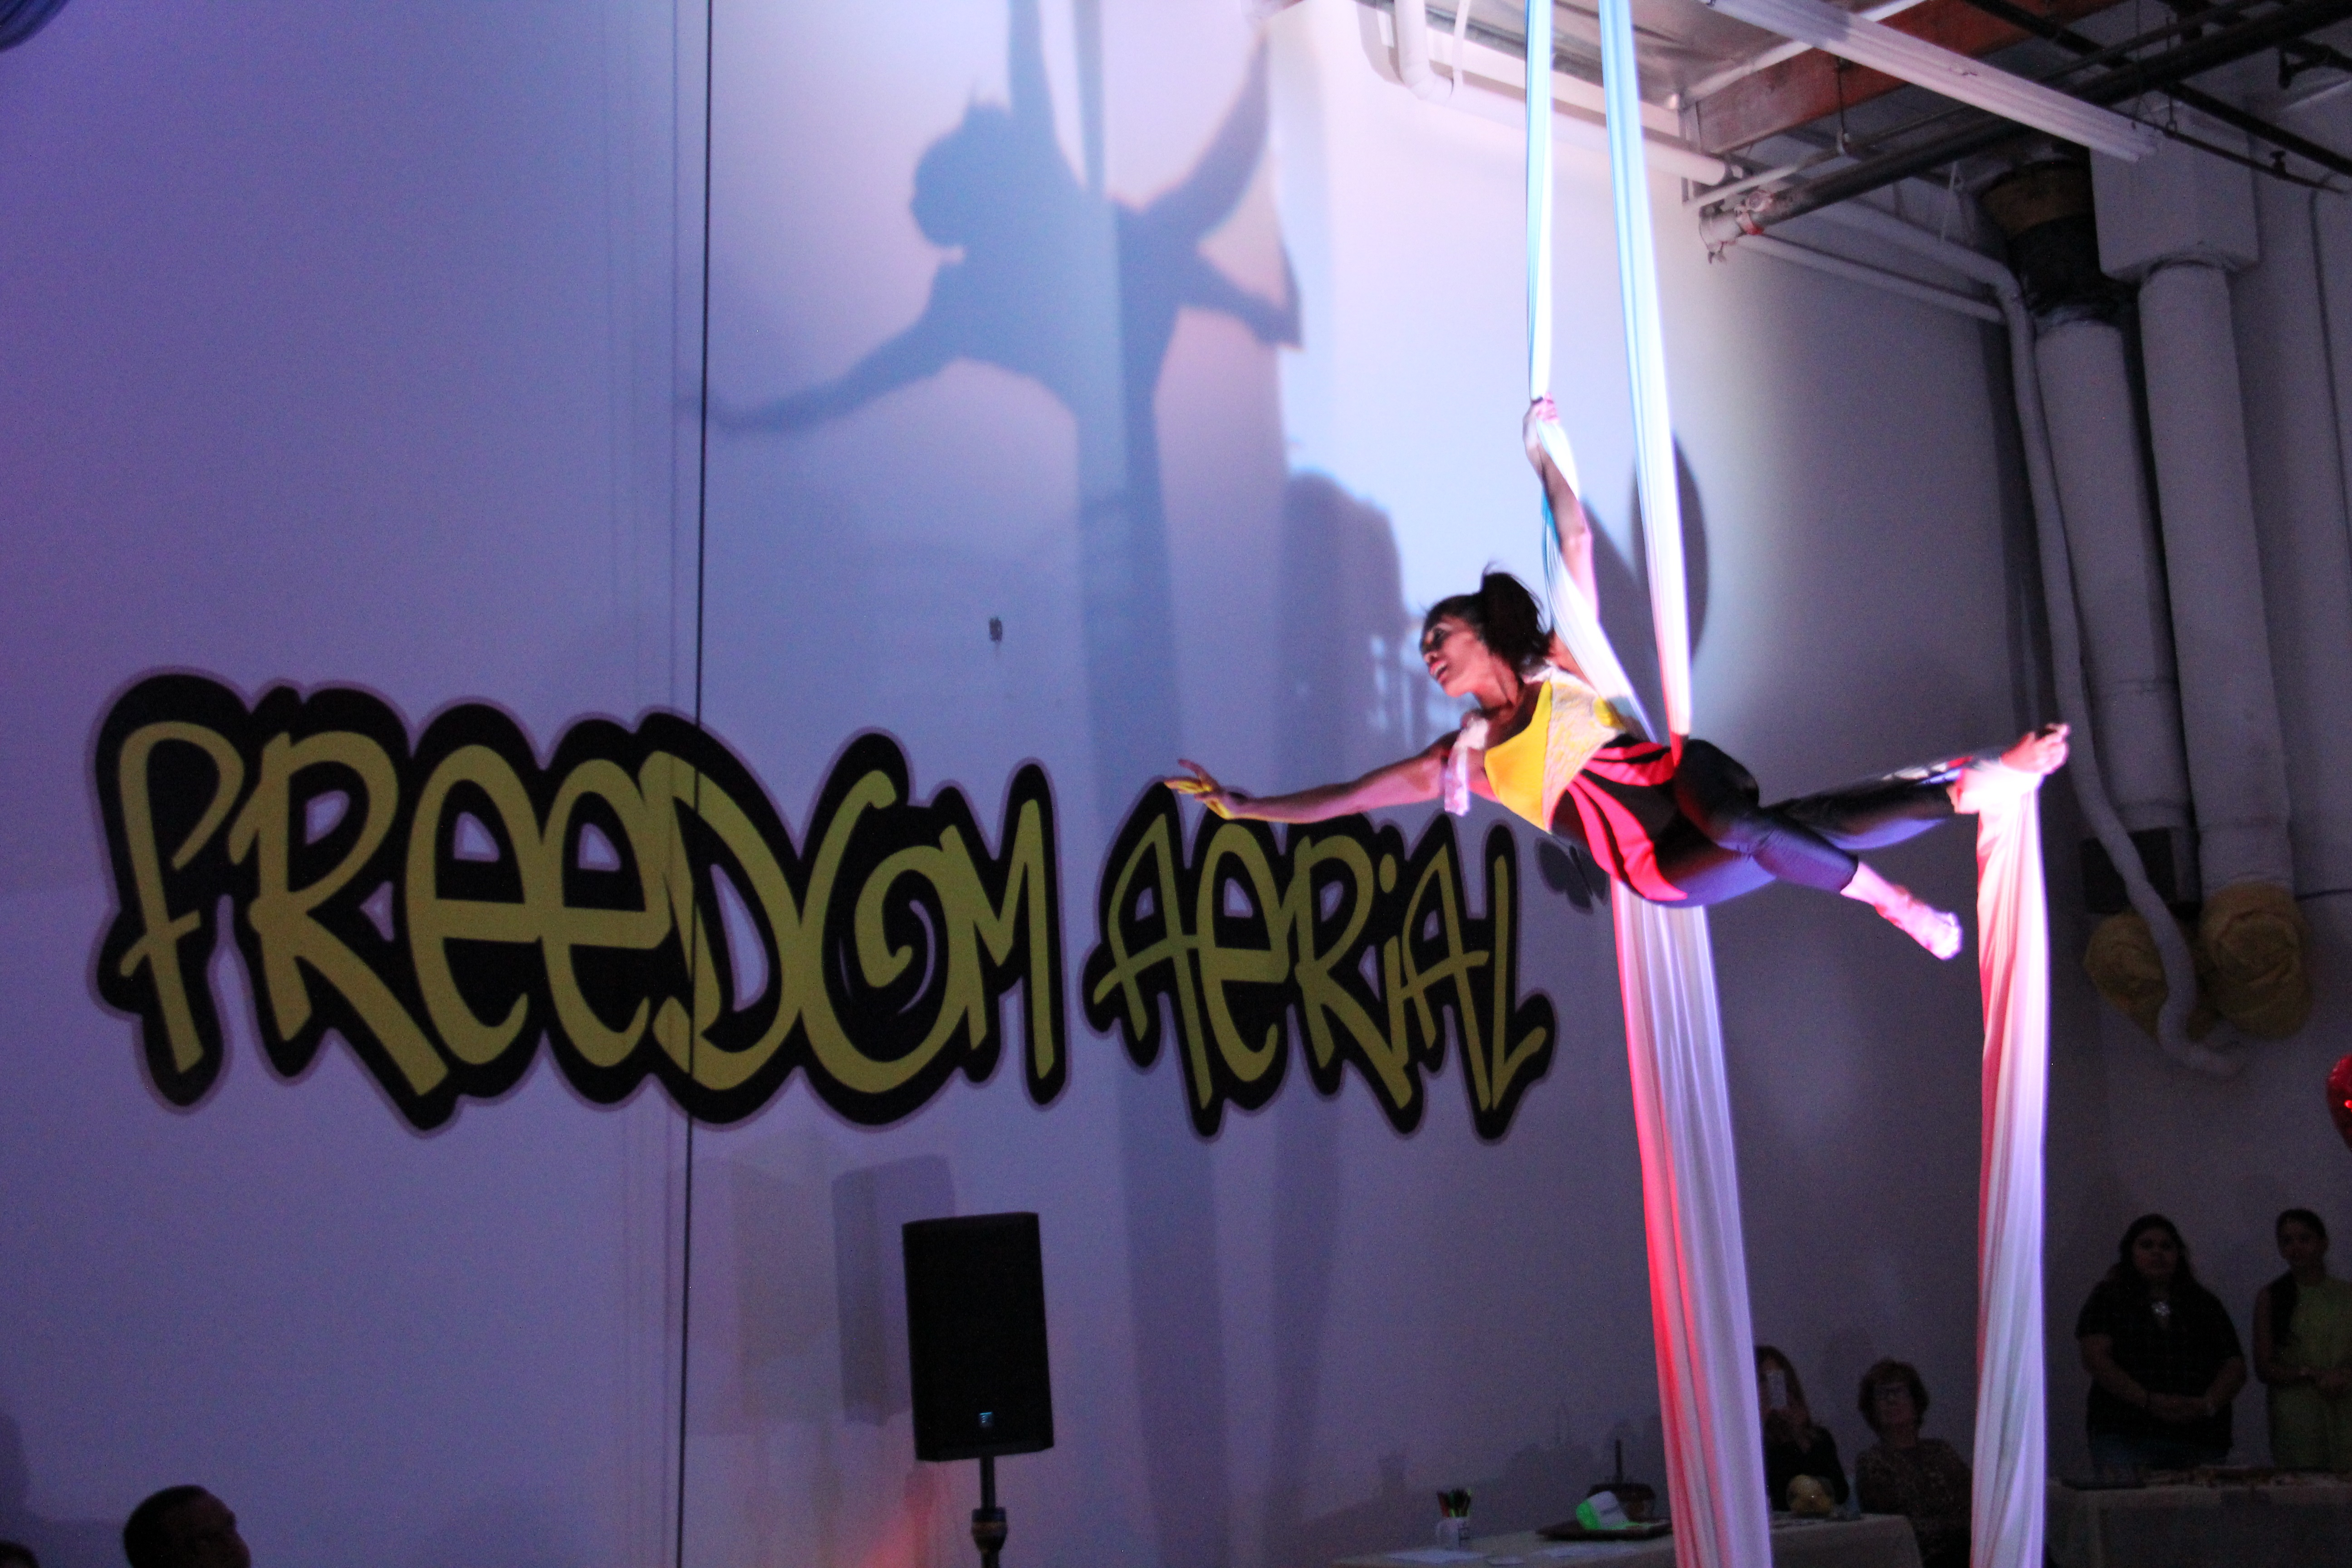 Freedom Aerial Grand Opening